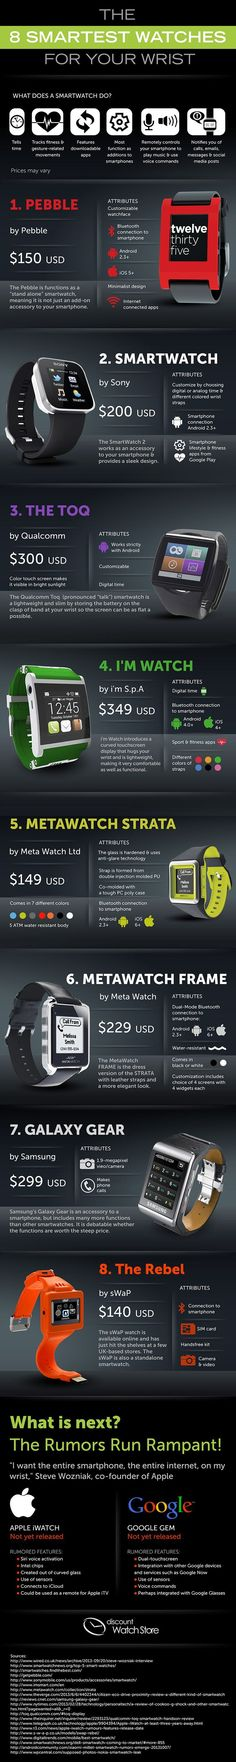 TECH - Top Smartest Watches Infographic. #smartwatch